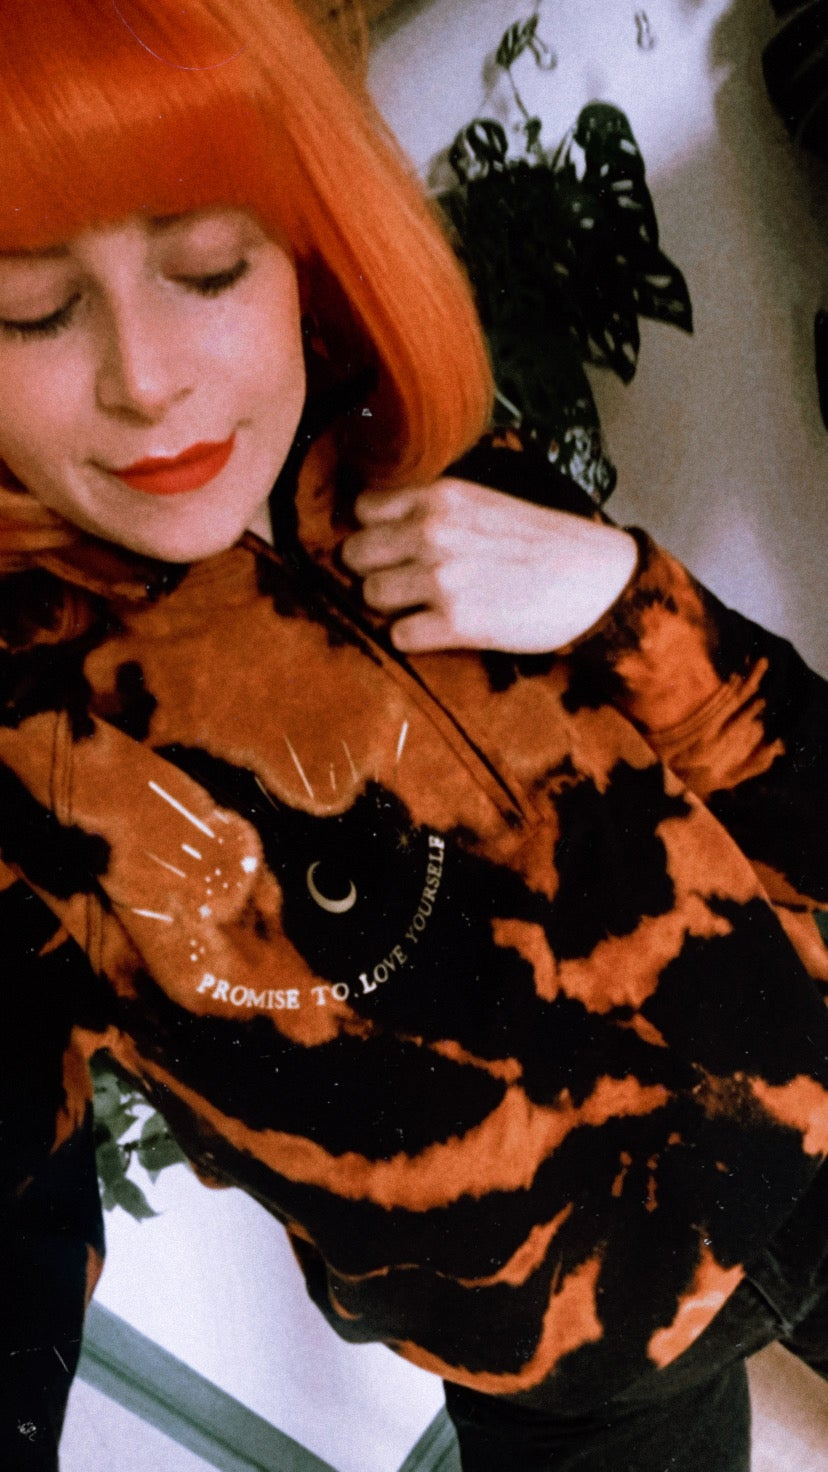 Image of Bleach dye zip up promise to love yourself sweater